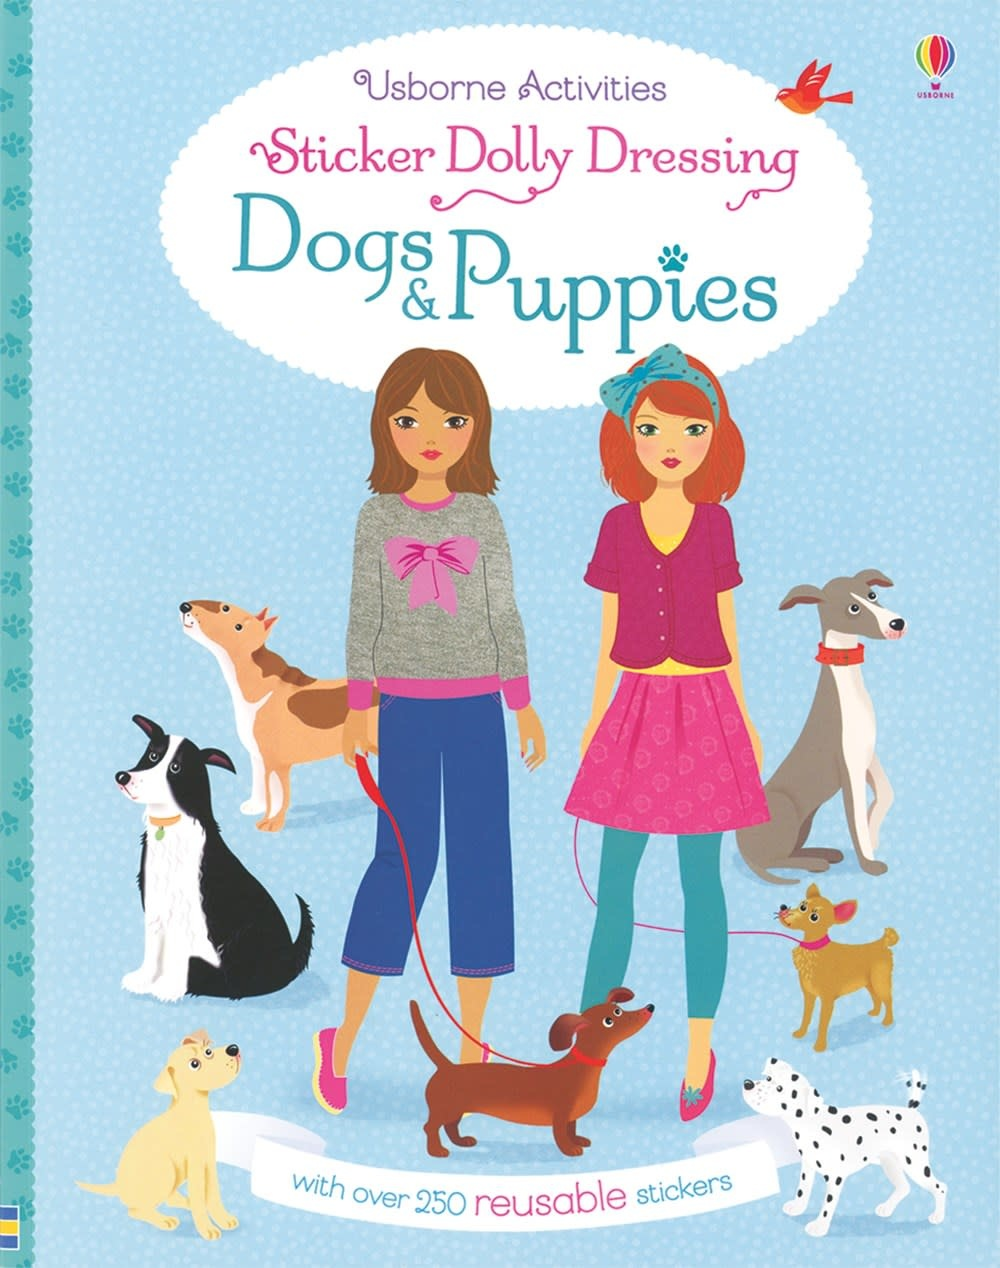 Usborne Sticker Dolly Dressing Dogs and Puppies